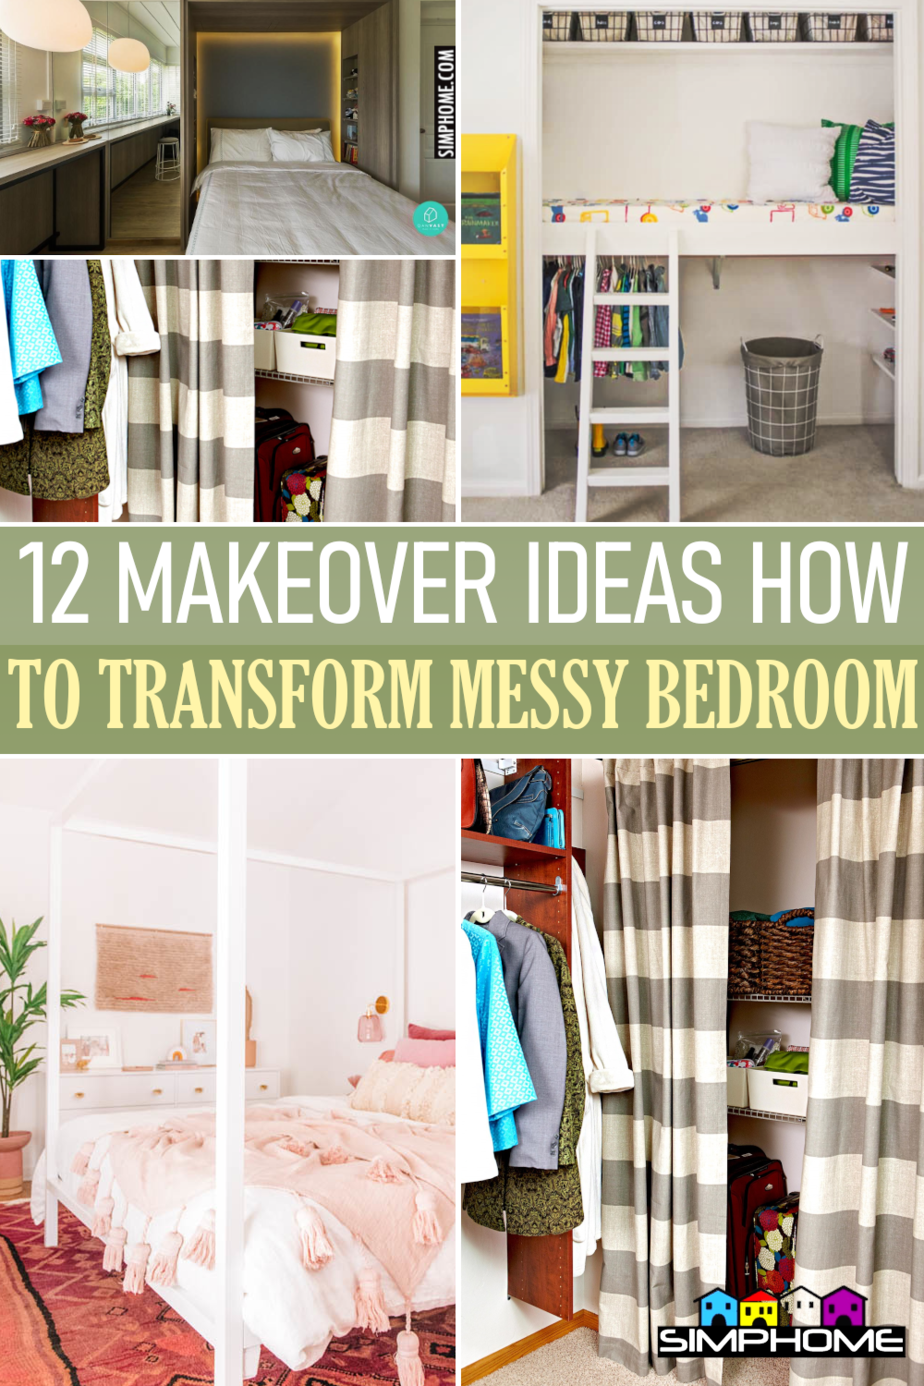 12 Bedroom Makeover Ideas to Transform a Messy Bedroom via Simphome.comFeatured